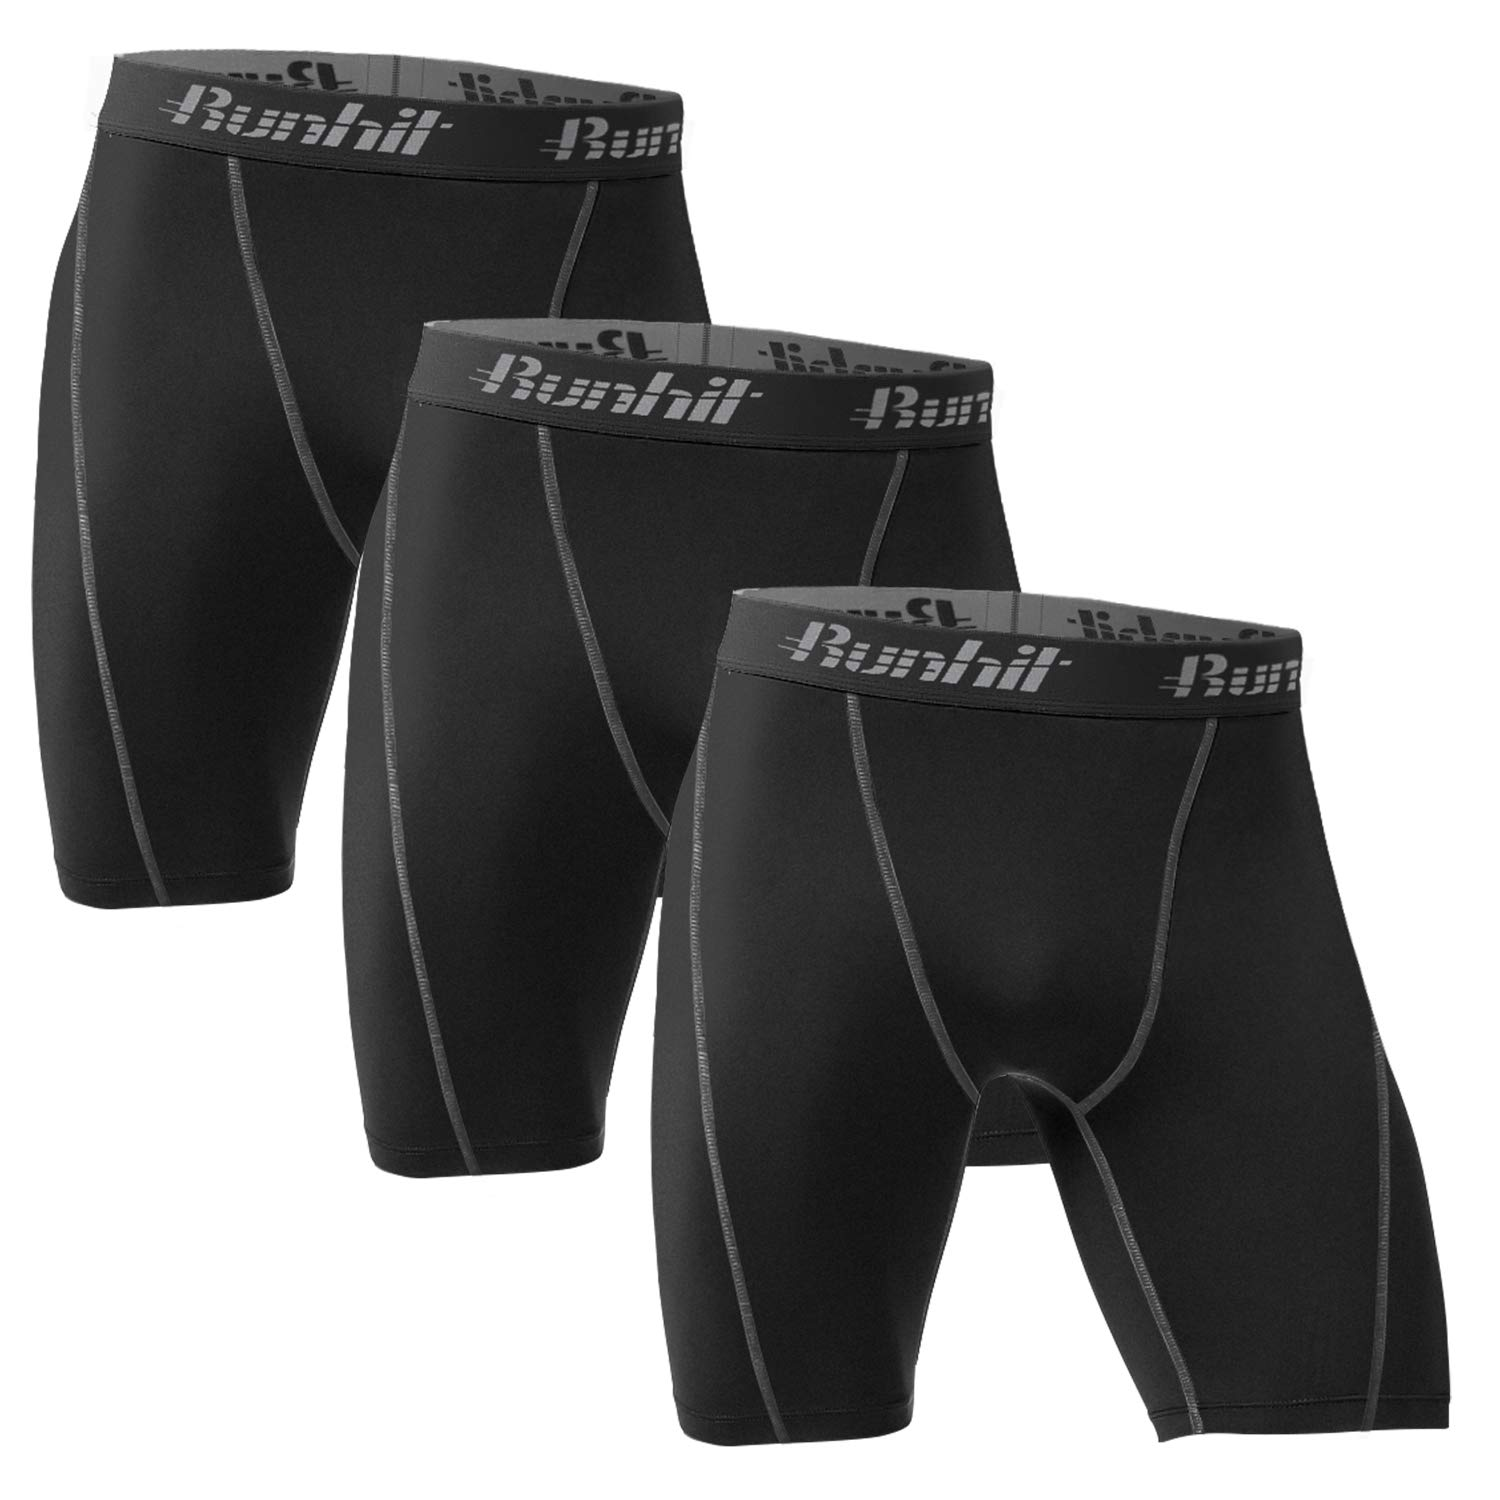 Runhit Men's Compression Shorts(3 Pack),Compression Spandex Shorts Underwear by Runhit